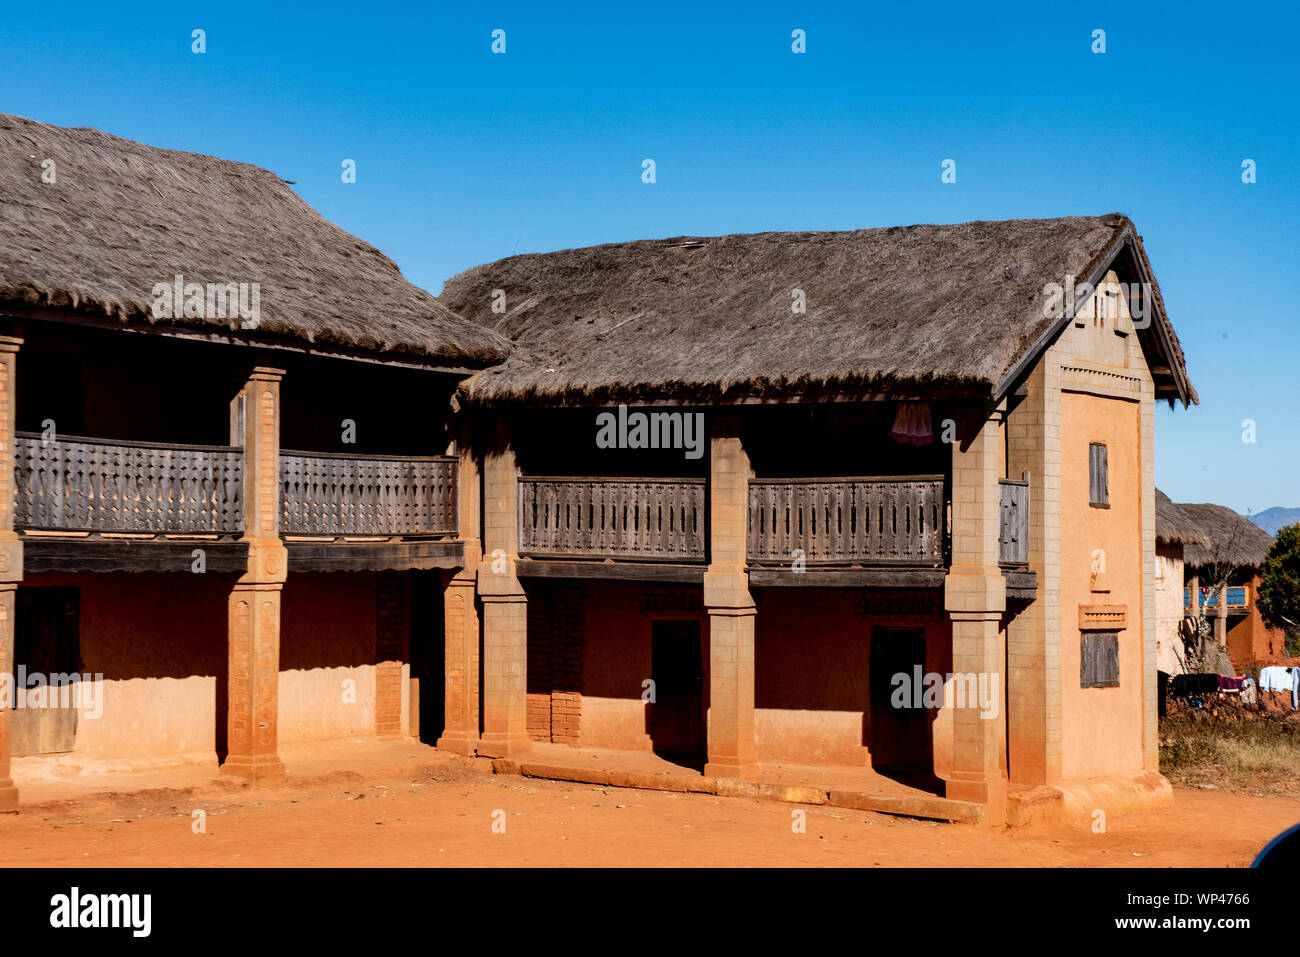 Typical Traditional Adobe Mud Brick Built Thatched Two Storey